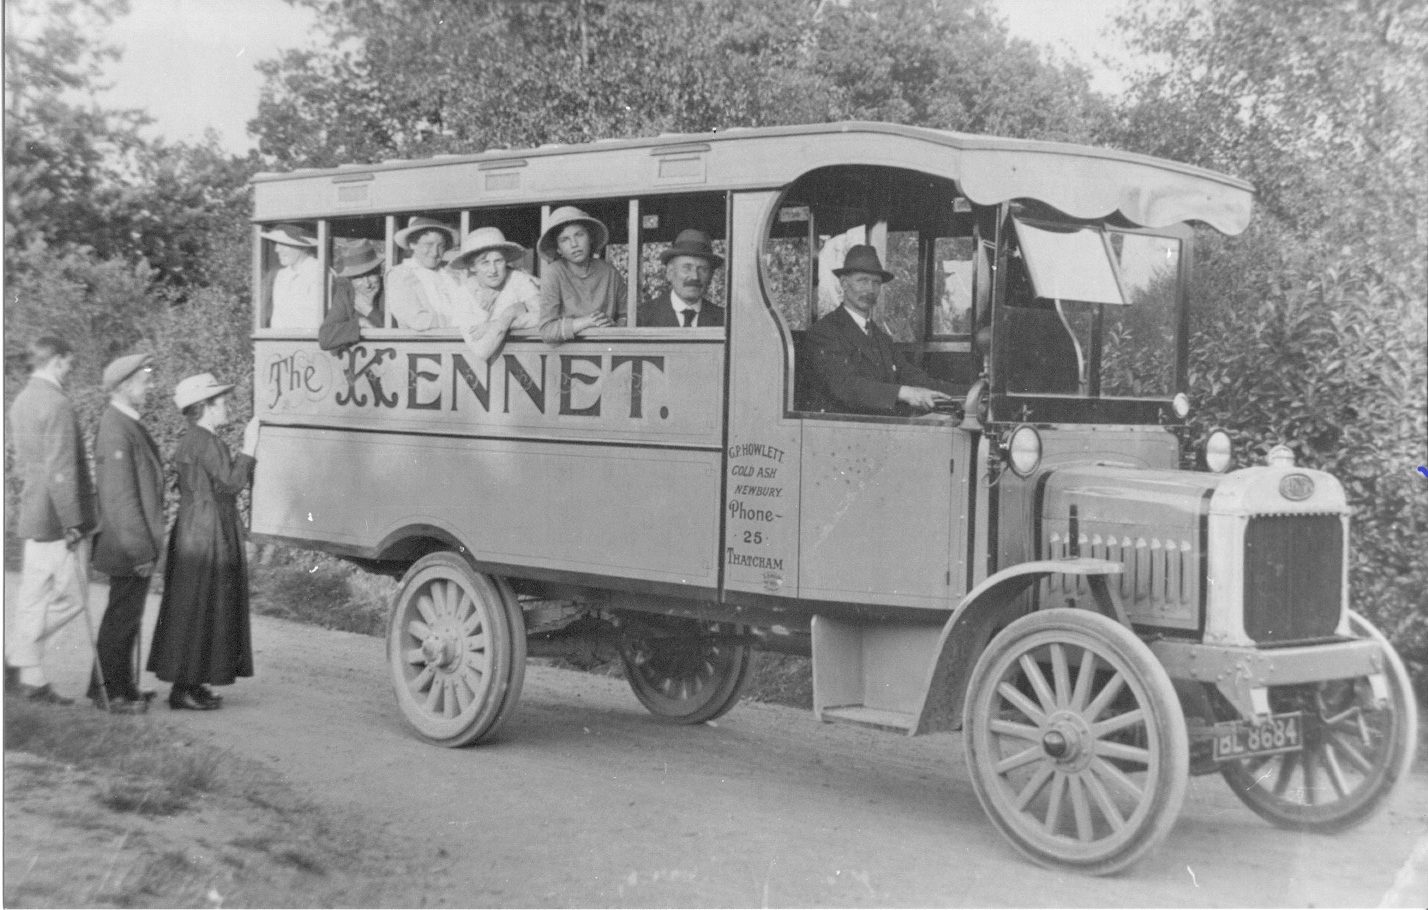 G.P. Howlett's bus courtesy of E.A. Stacey.